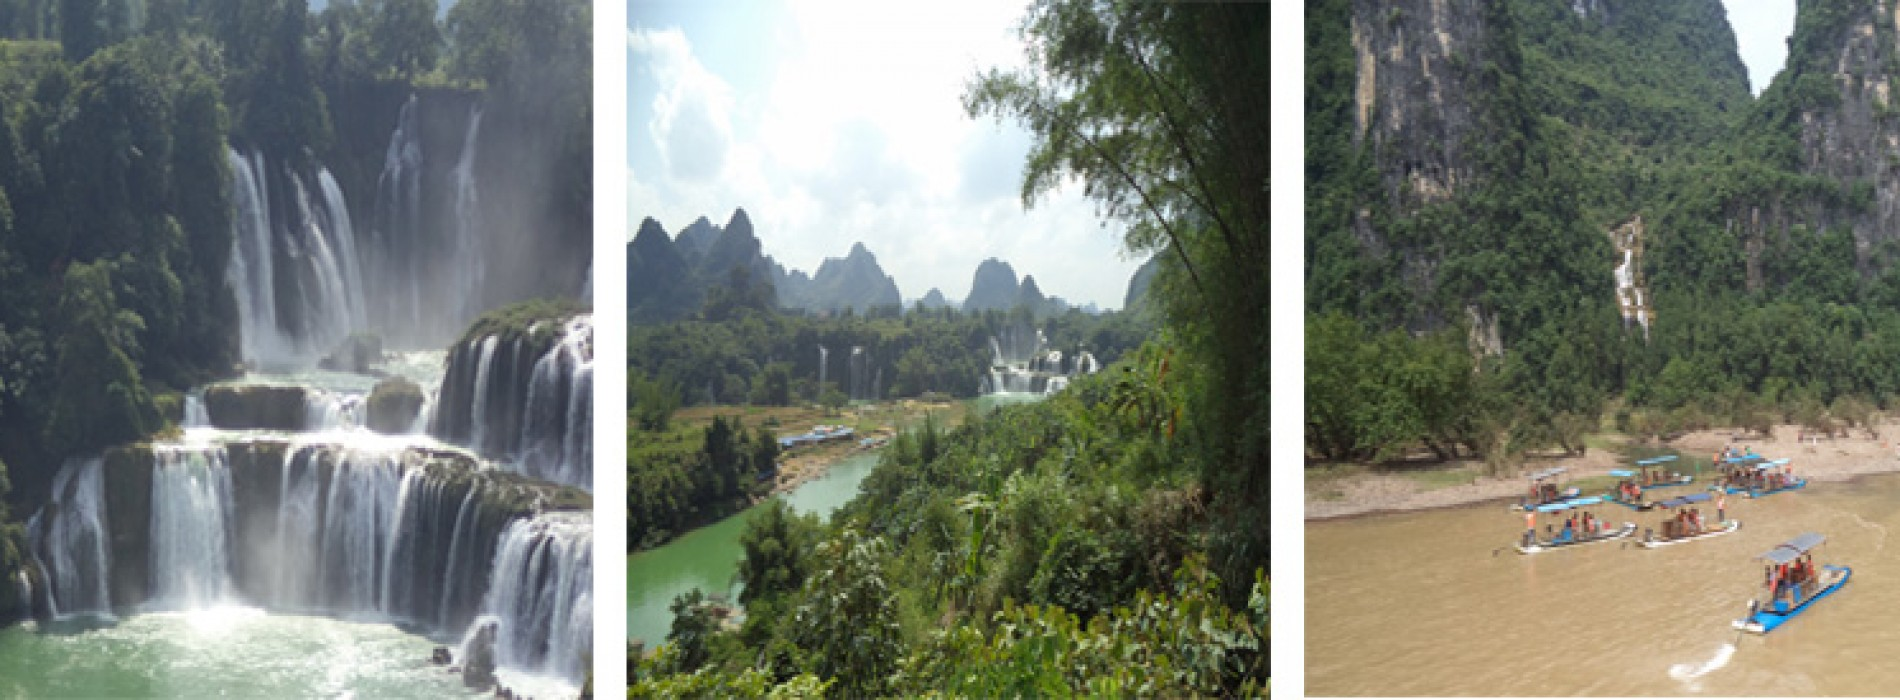 Guilin: a historical and wonderful city in Guangxi